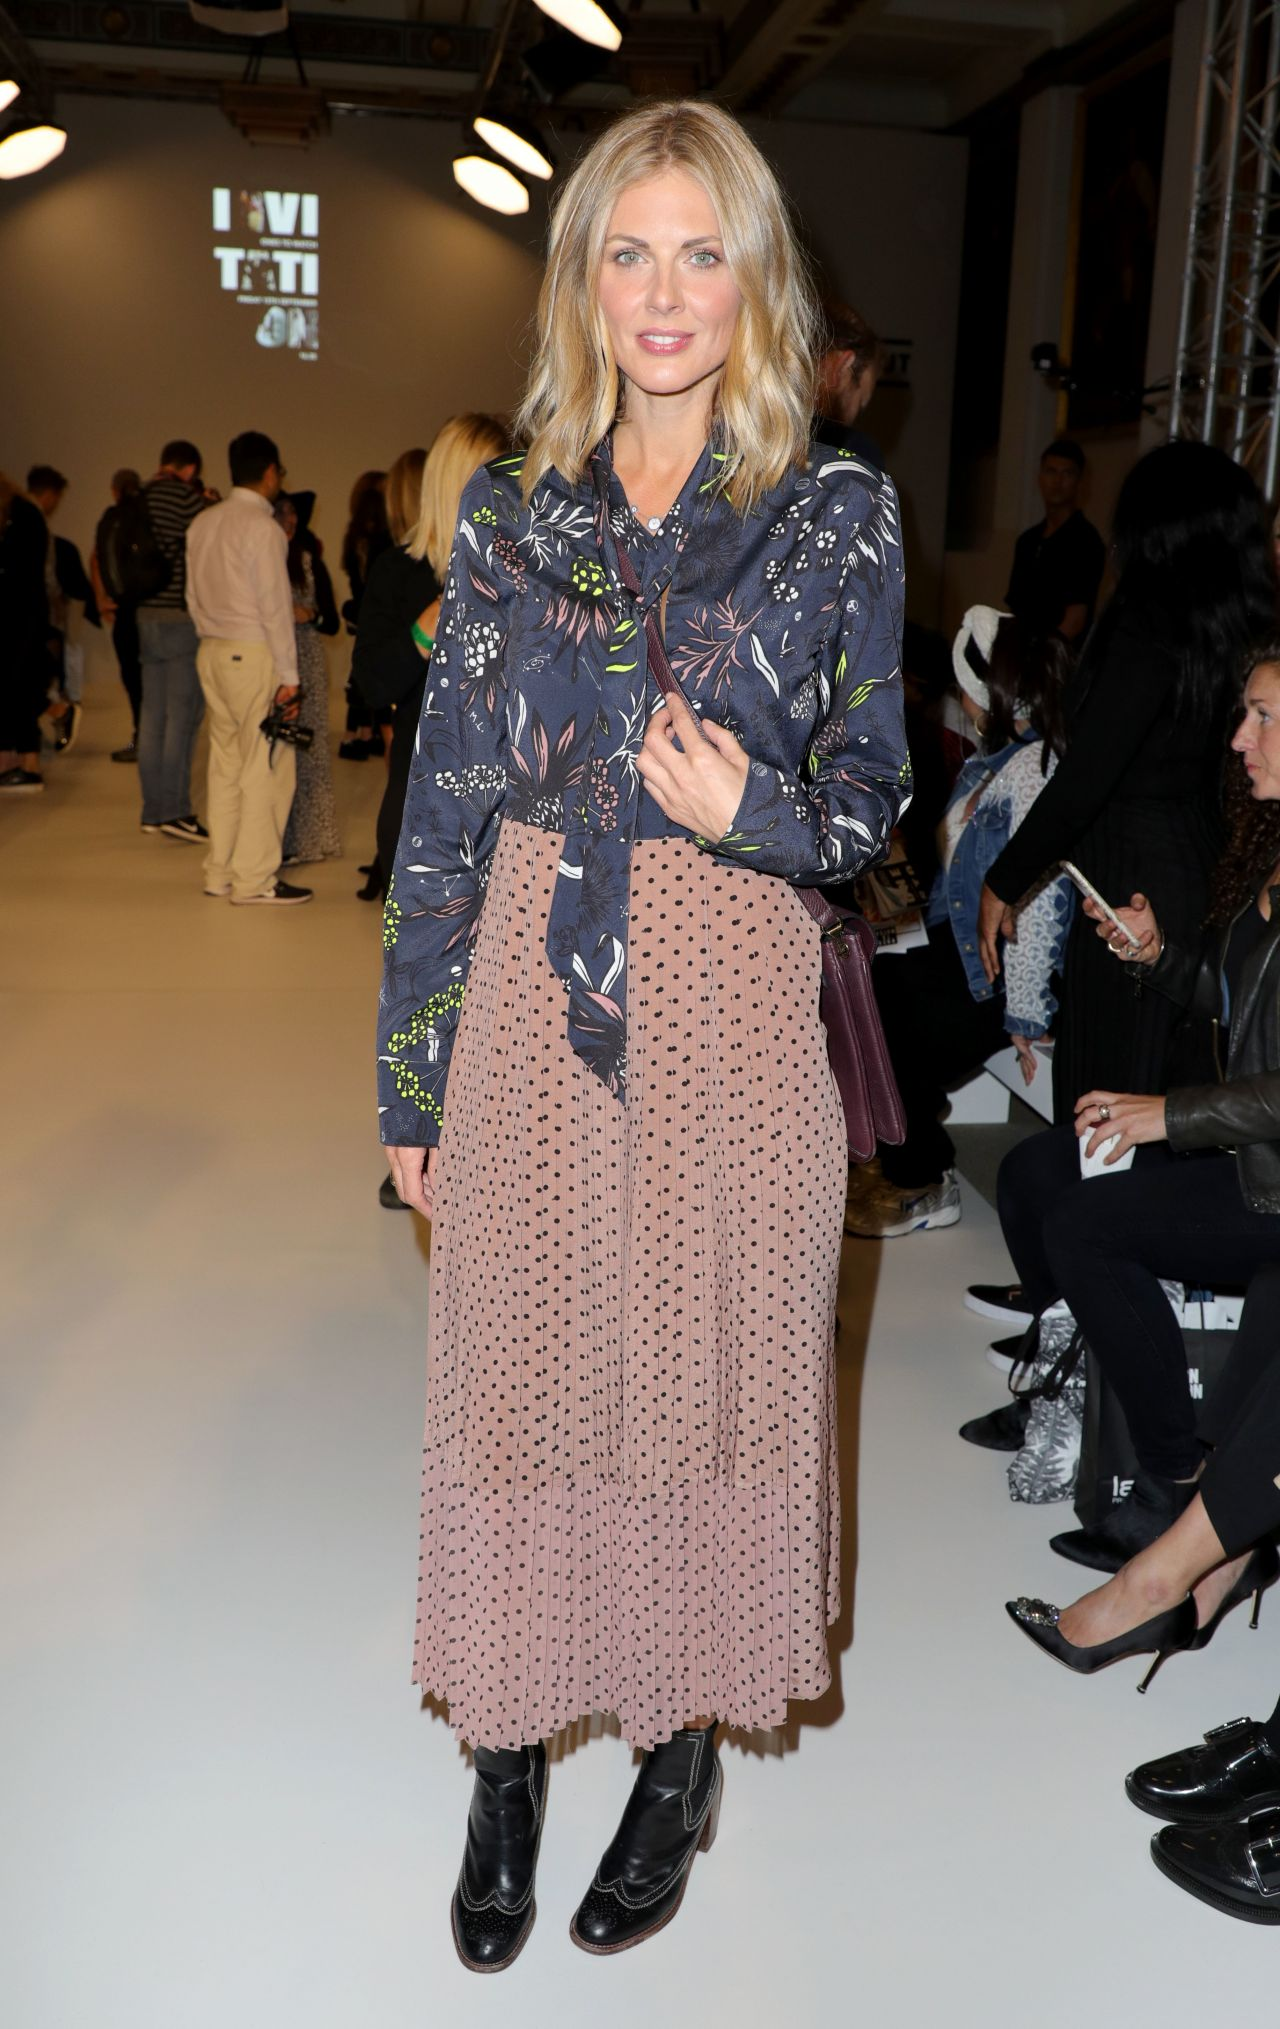 Donna air fashion scout one to watch show in london naked (71 photos), Paparazzi Celebrites pictures